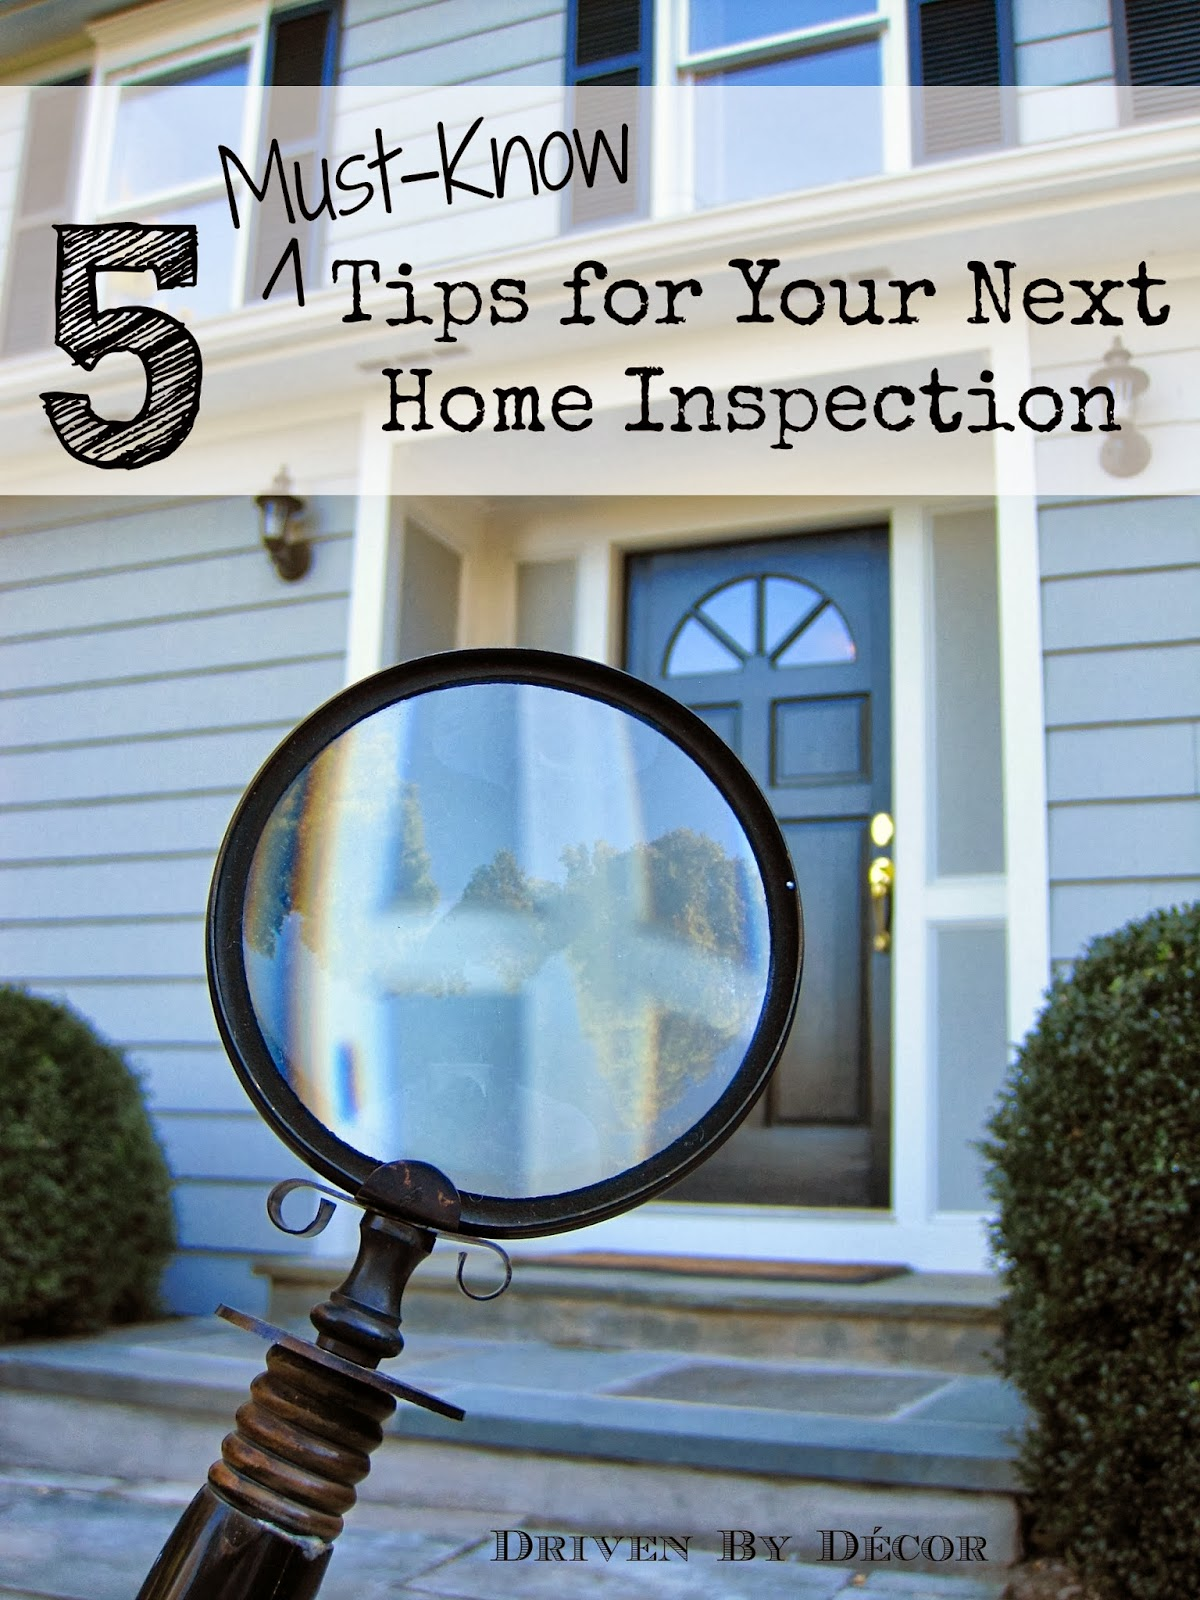 Home inspections 5 must know tips driven by decor for Home inspection tips